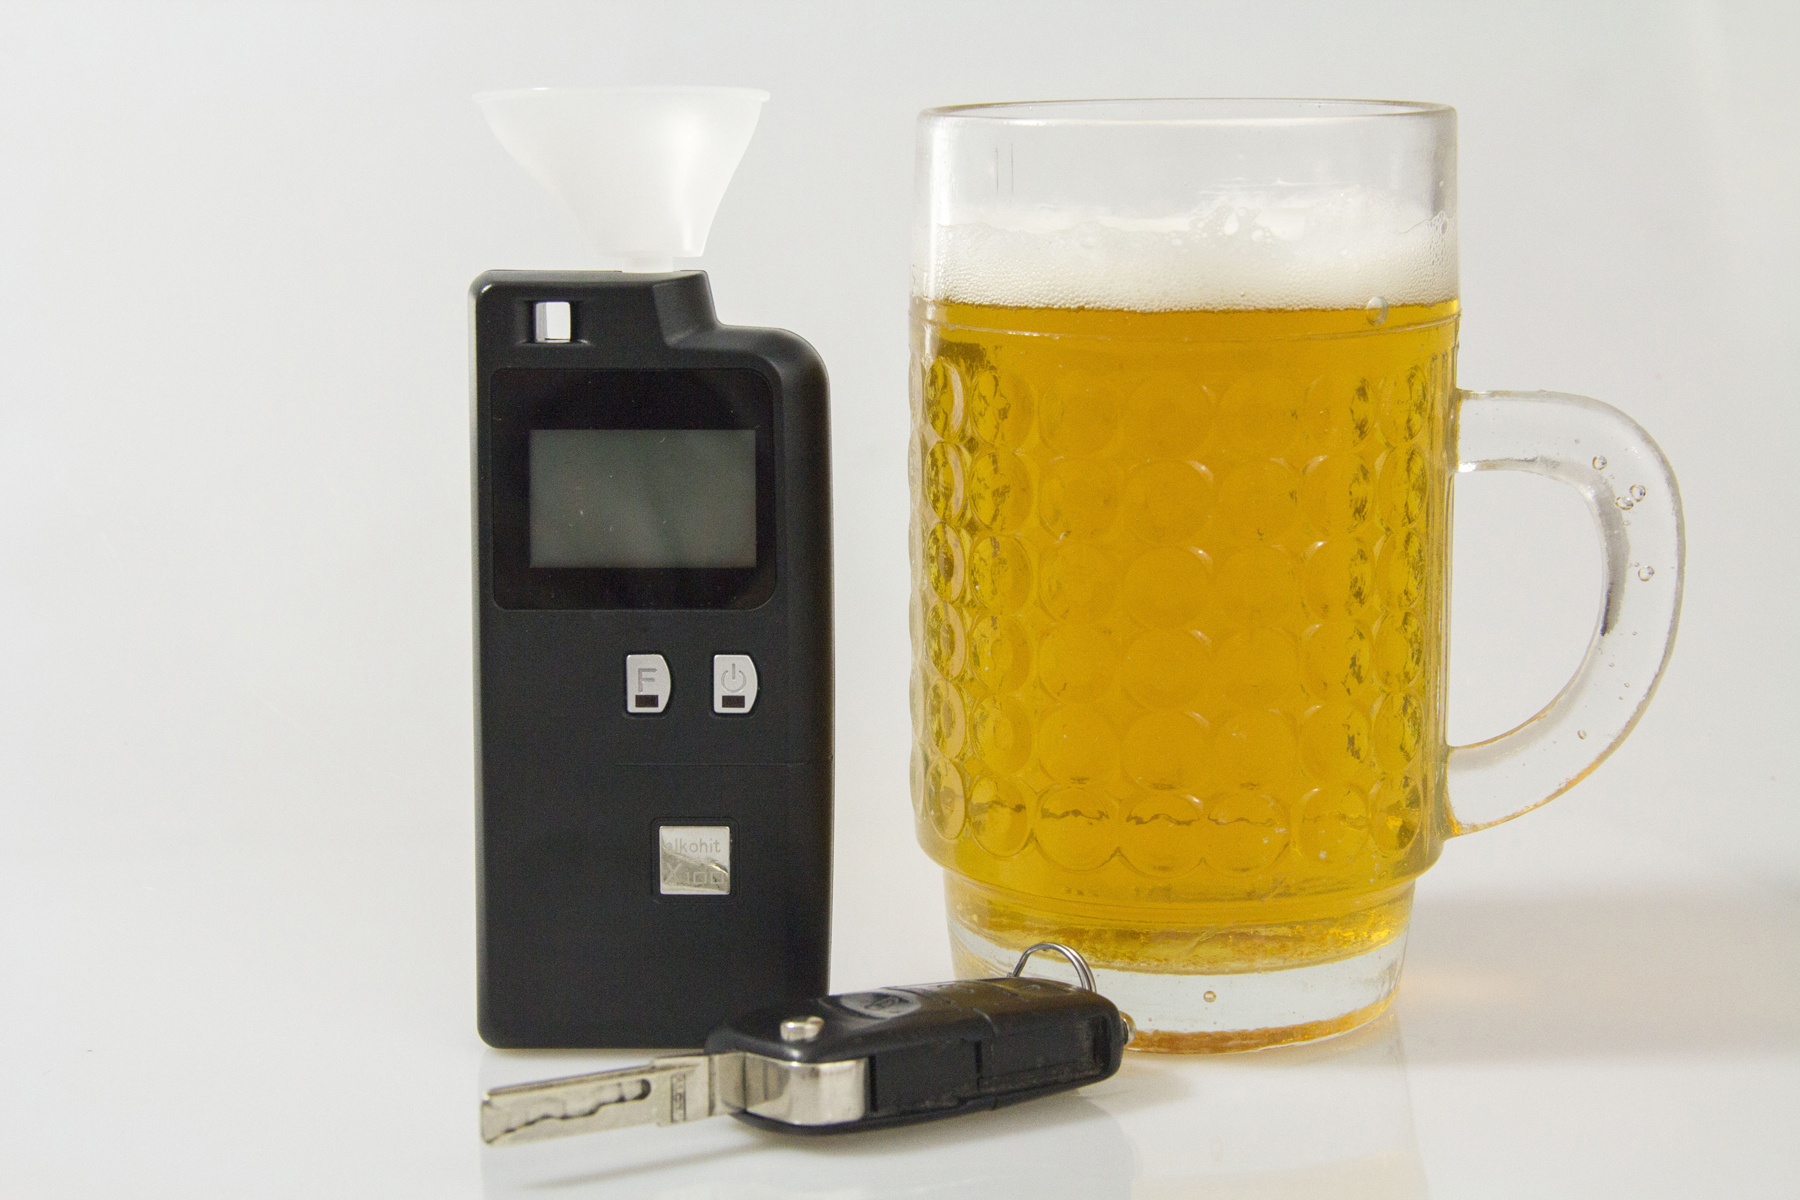 An electronic breathalyser on a table next to a pair of car keys and a pint of beer